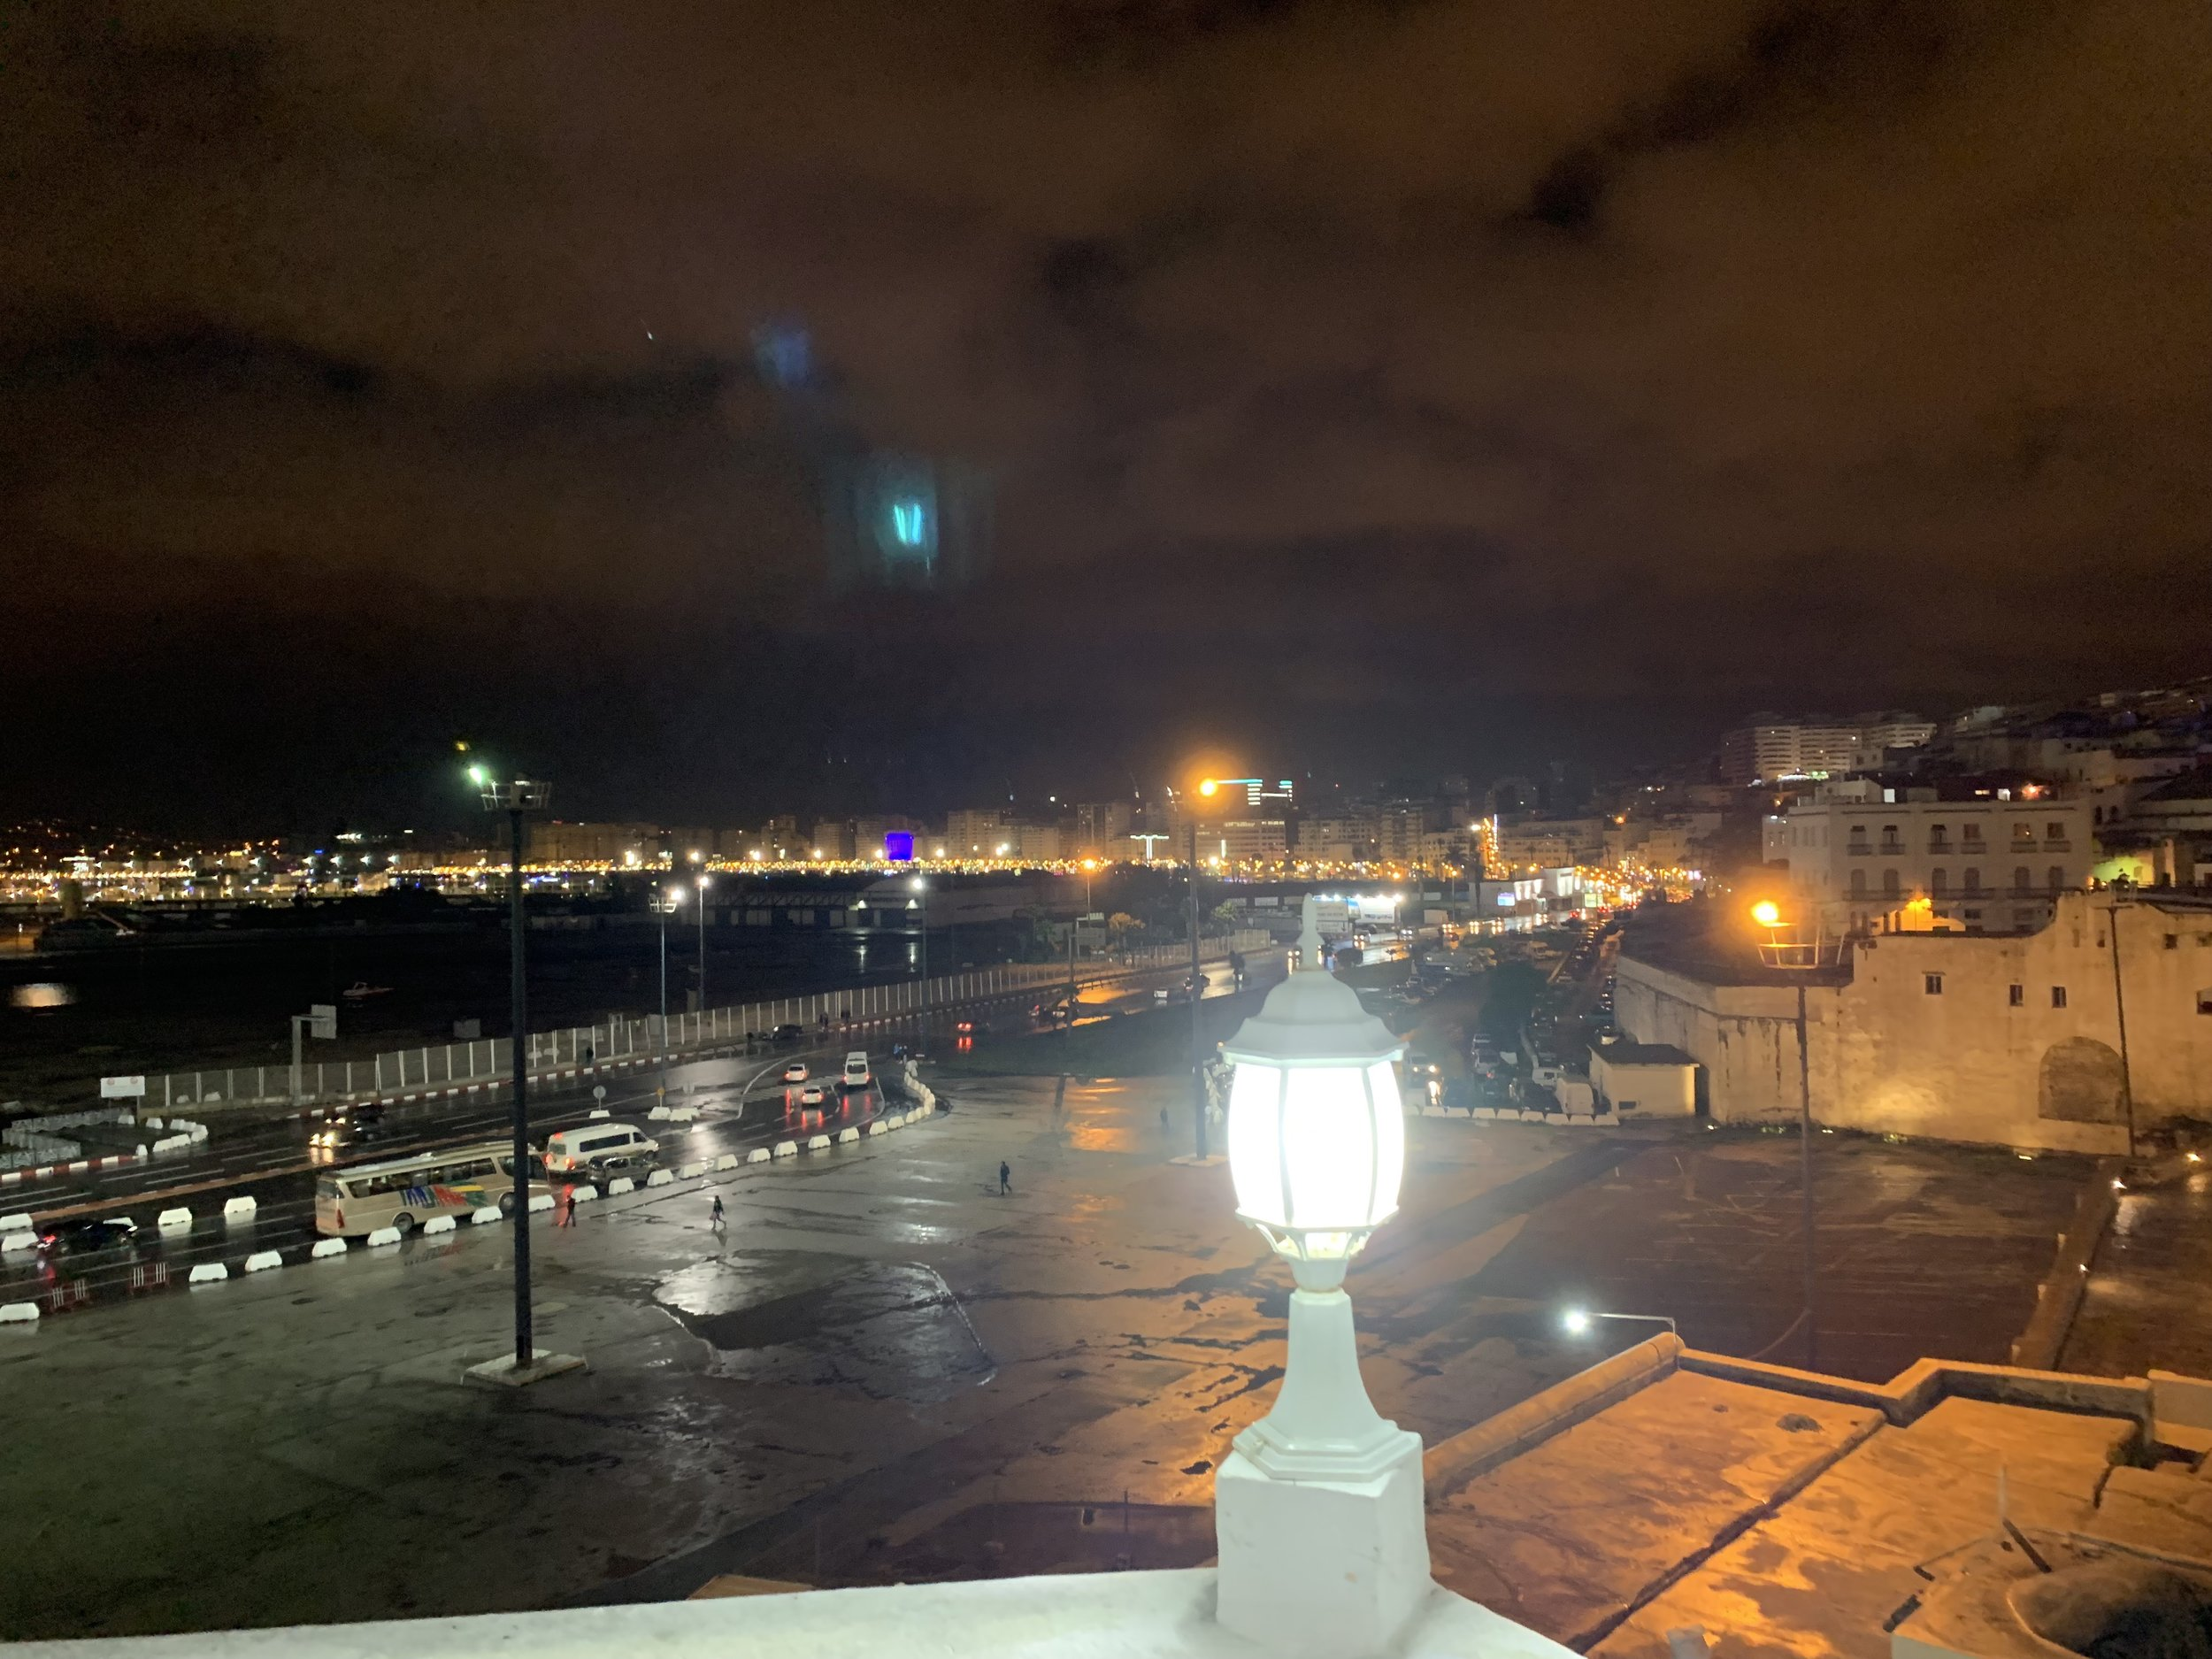 Situated at the northernmost tip of the country on the Strait of Gibraltar, Tangier is a sight to be seen at night. The city is renowned as a pseudo-international center with Spain only 8 miles away across the straight and Tangier positioned at the mouth of the Mediterranean Sea. Photo Credit: M. Aboko-Cole, Spring 2019.